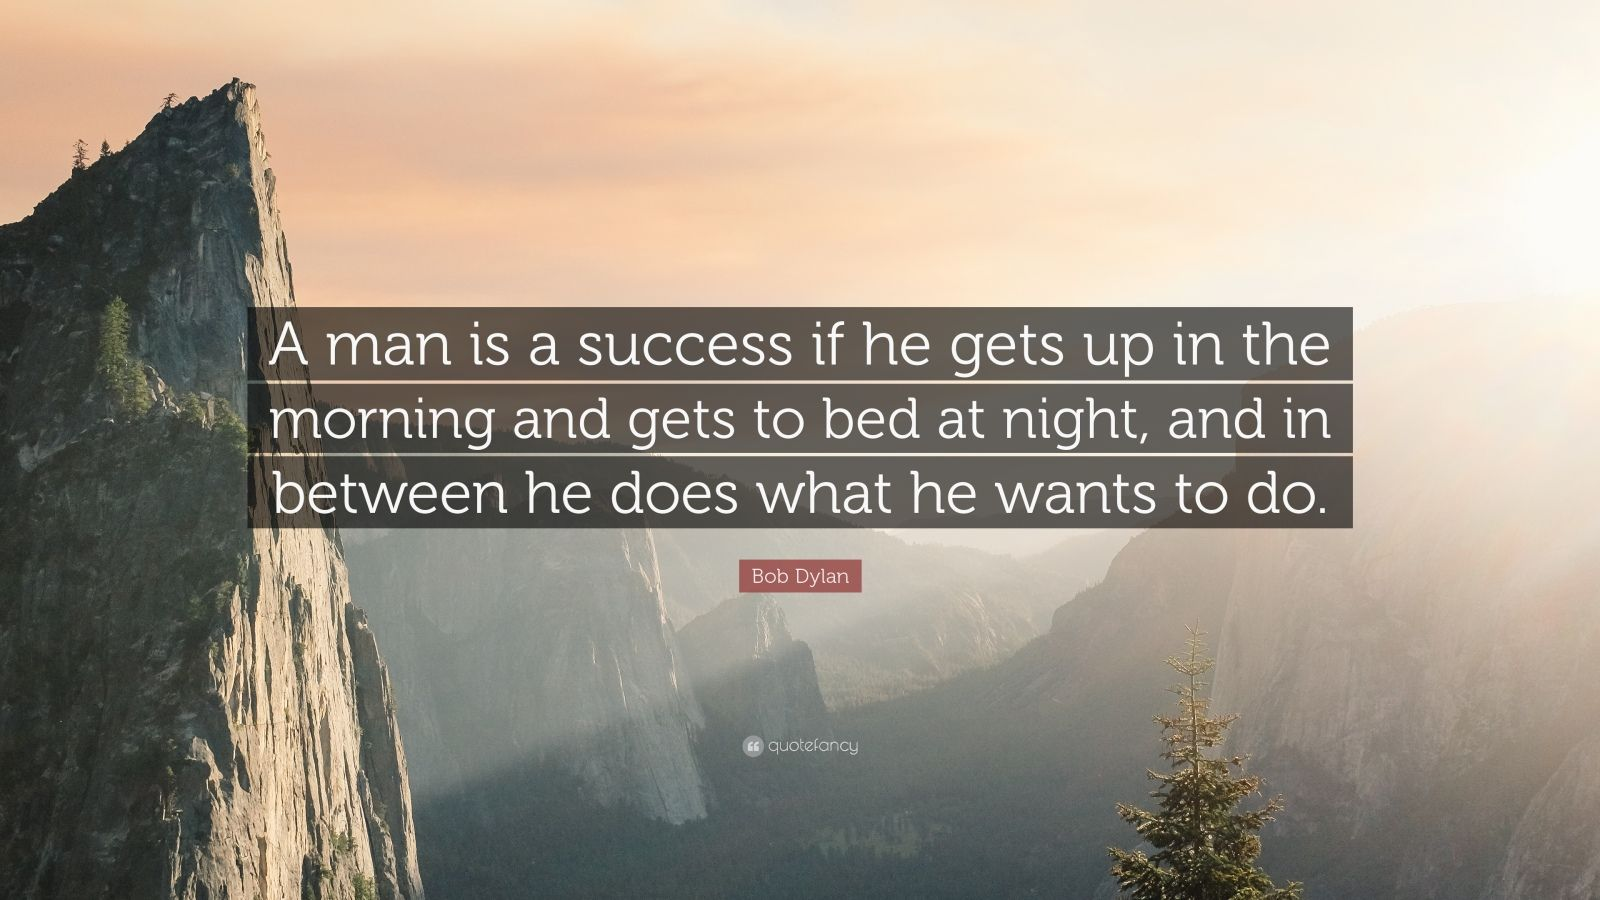 success quotes quotefancy success quotes a man is a success if he gets up in the morning